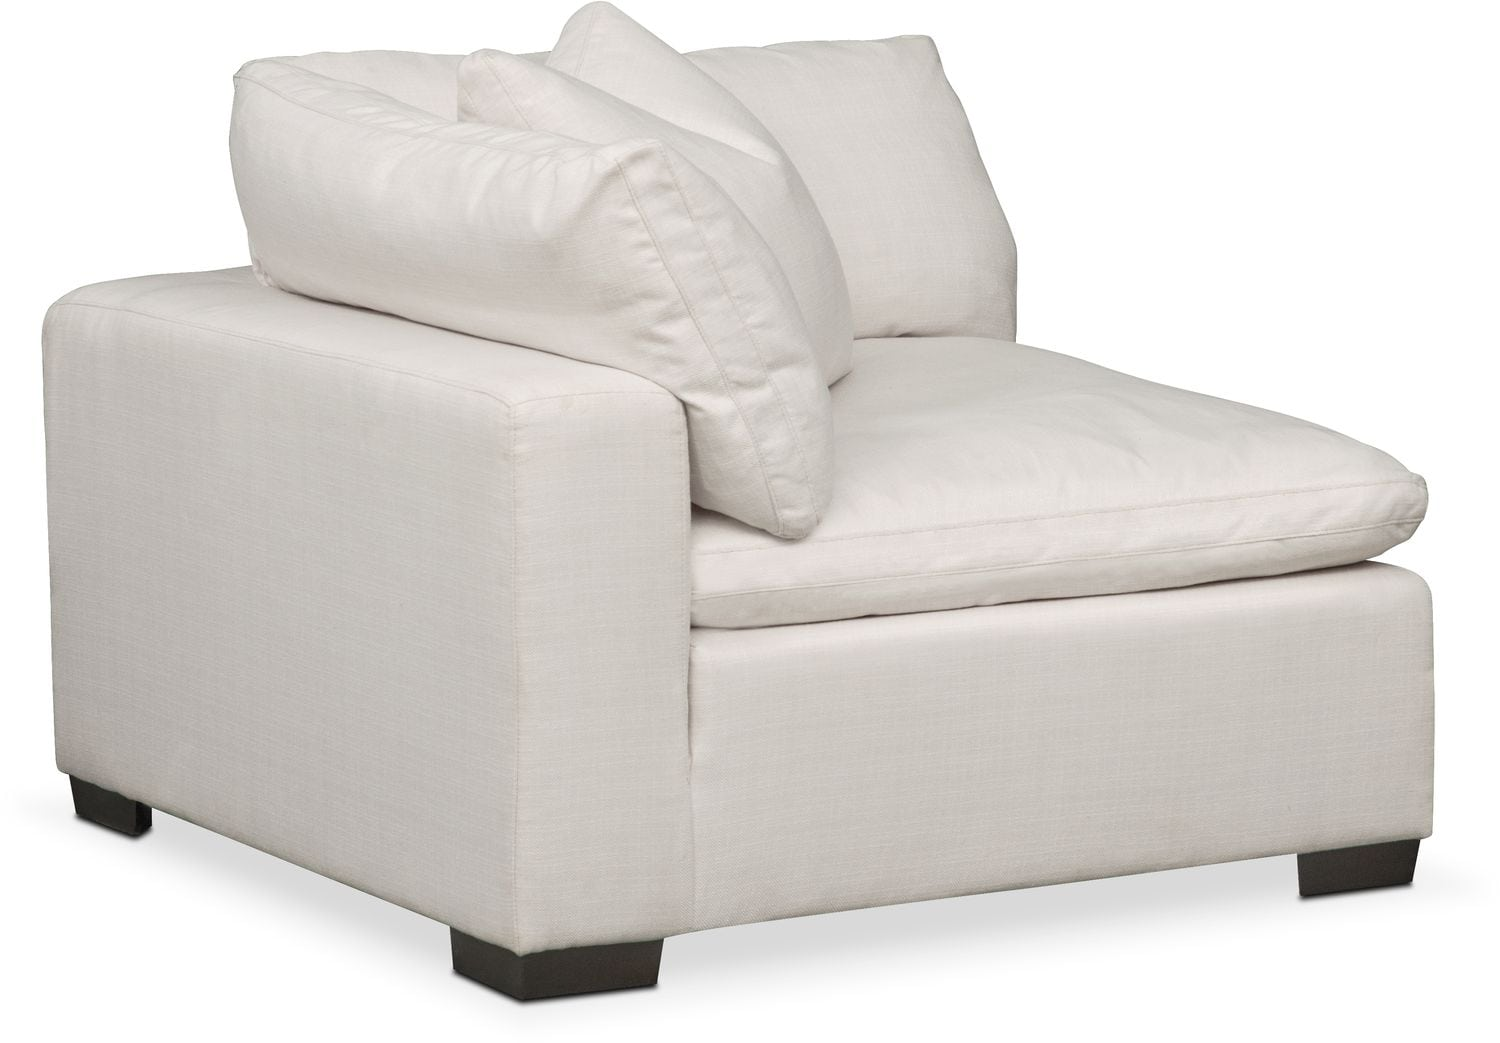 plush magnum sofa review leather repair dallas tx 4 piece sectional and ottoman anders ivory